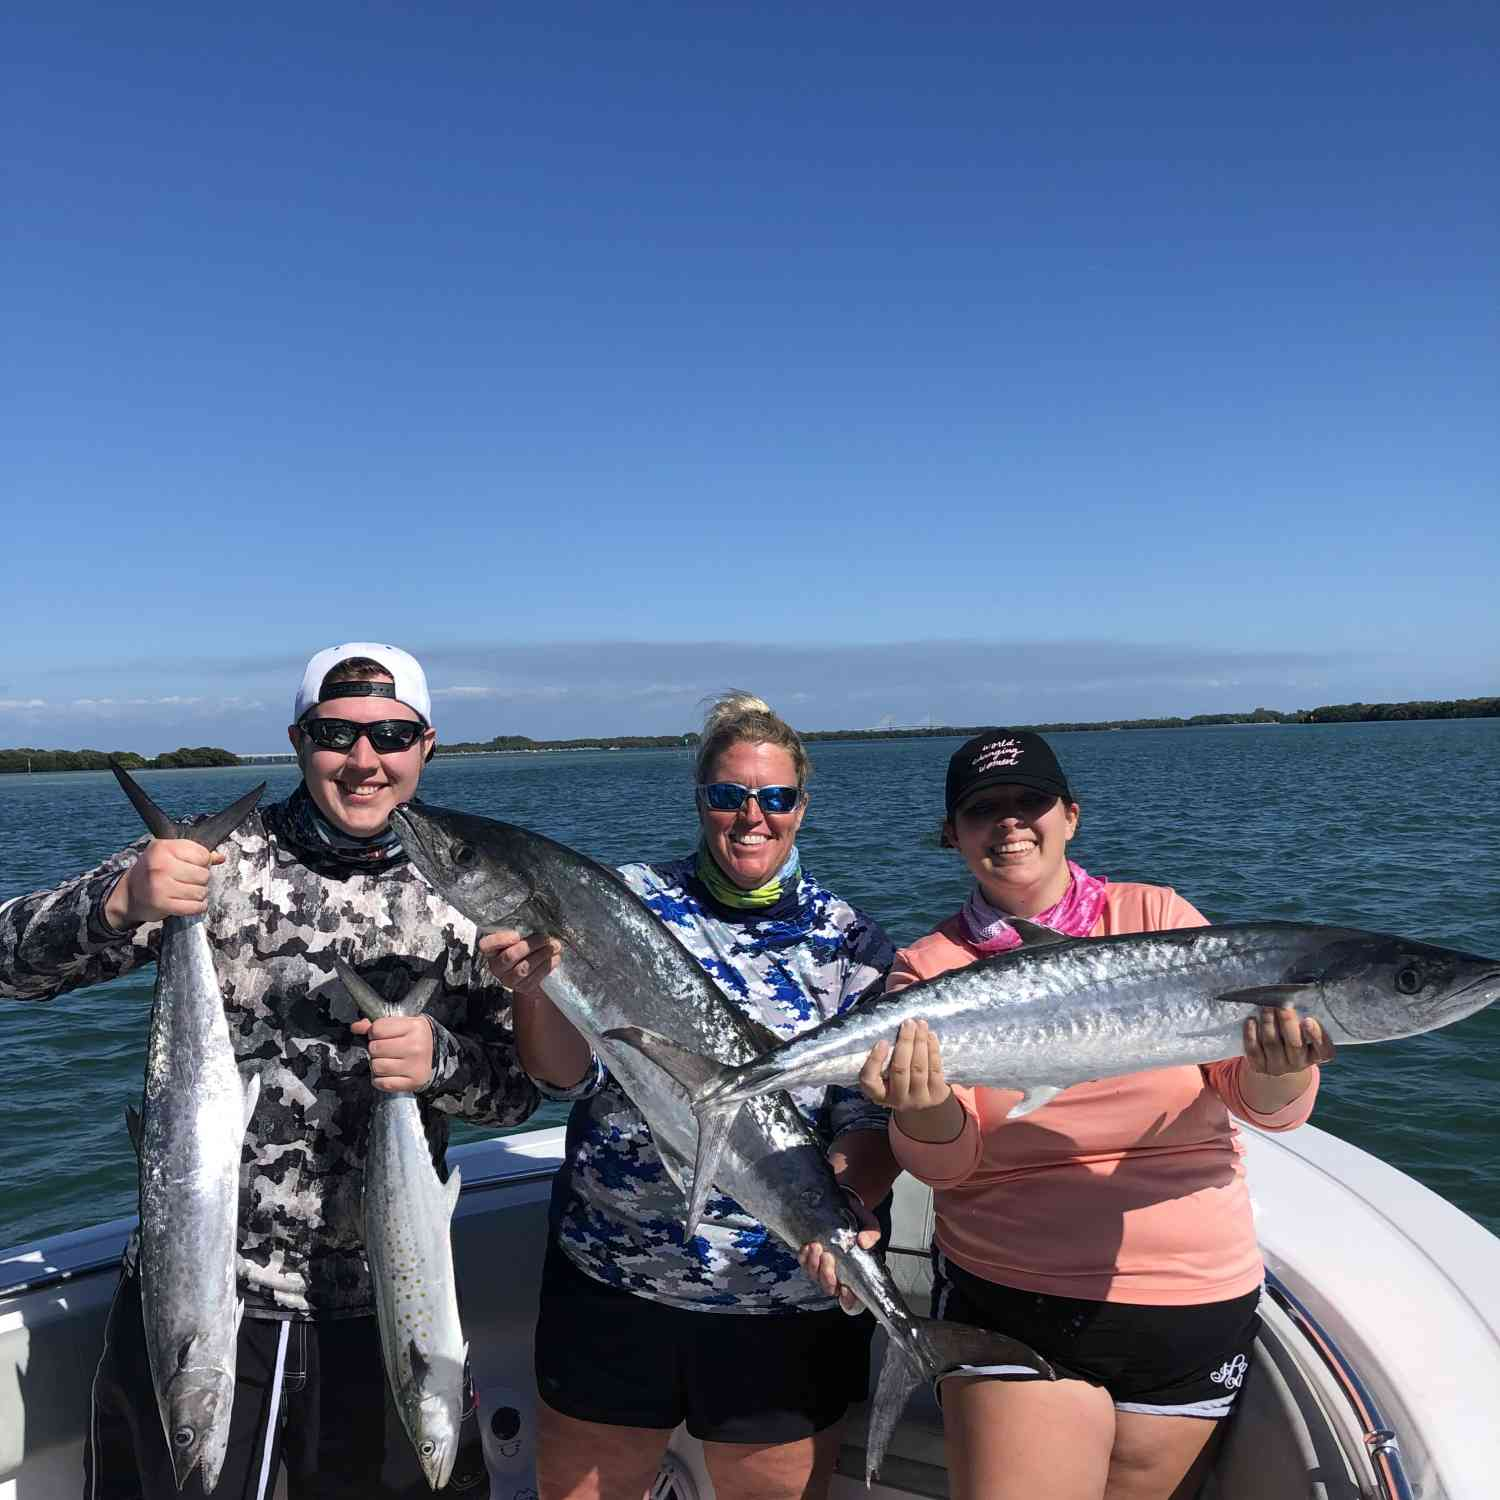 Title: Mackerel Frenzy - On board their Sportsman Open 282TE Center Console - Location: Fort Desoto, Florida. Participating in the Photo Contest #SportsmanMay2020